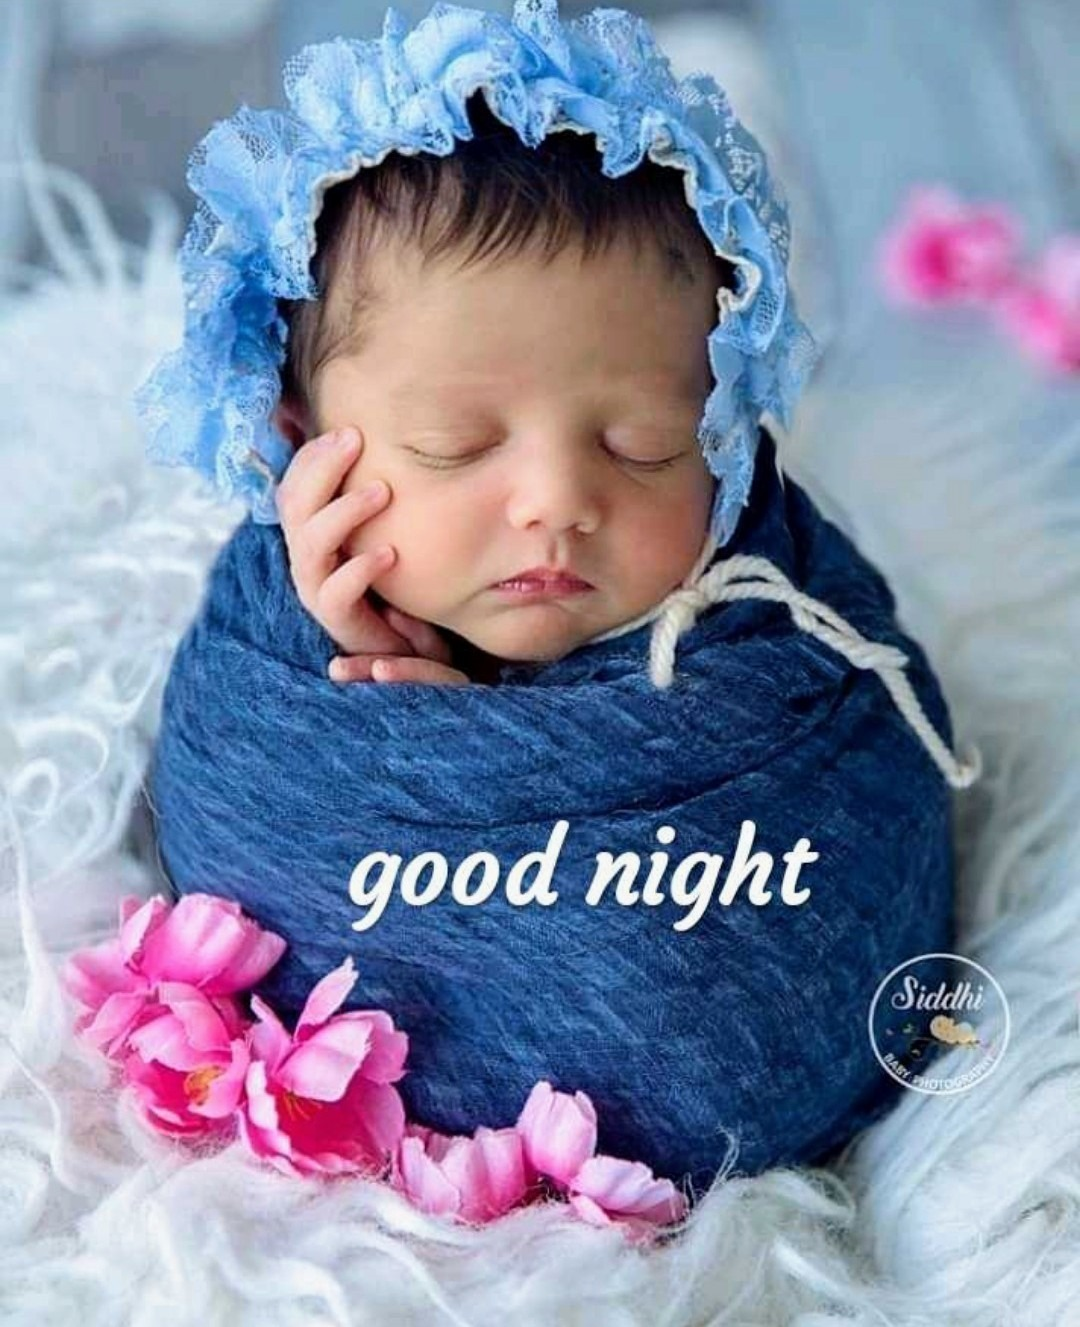 Good Night Images With Cute Baby Girl : night, images, Night, DesiComments.com